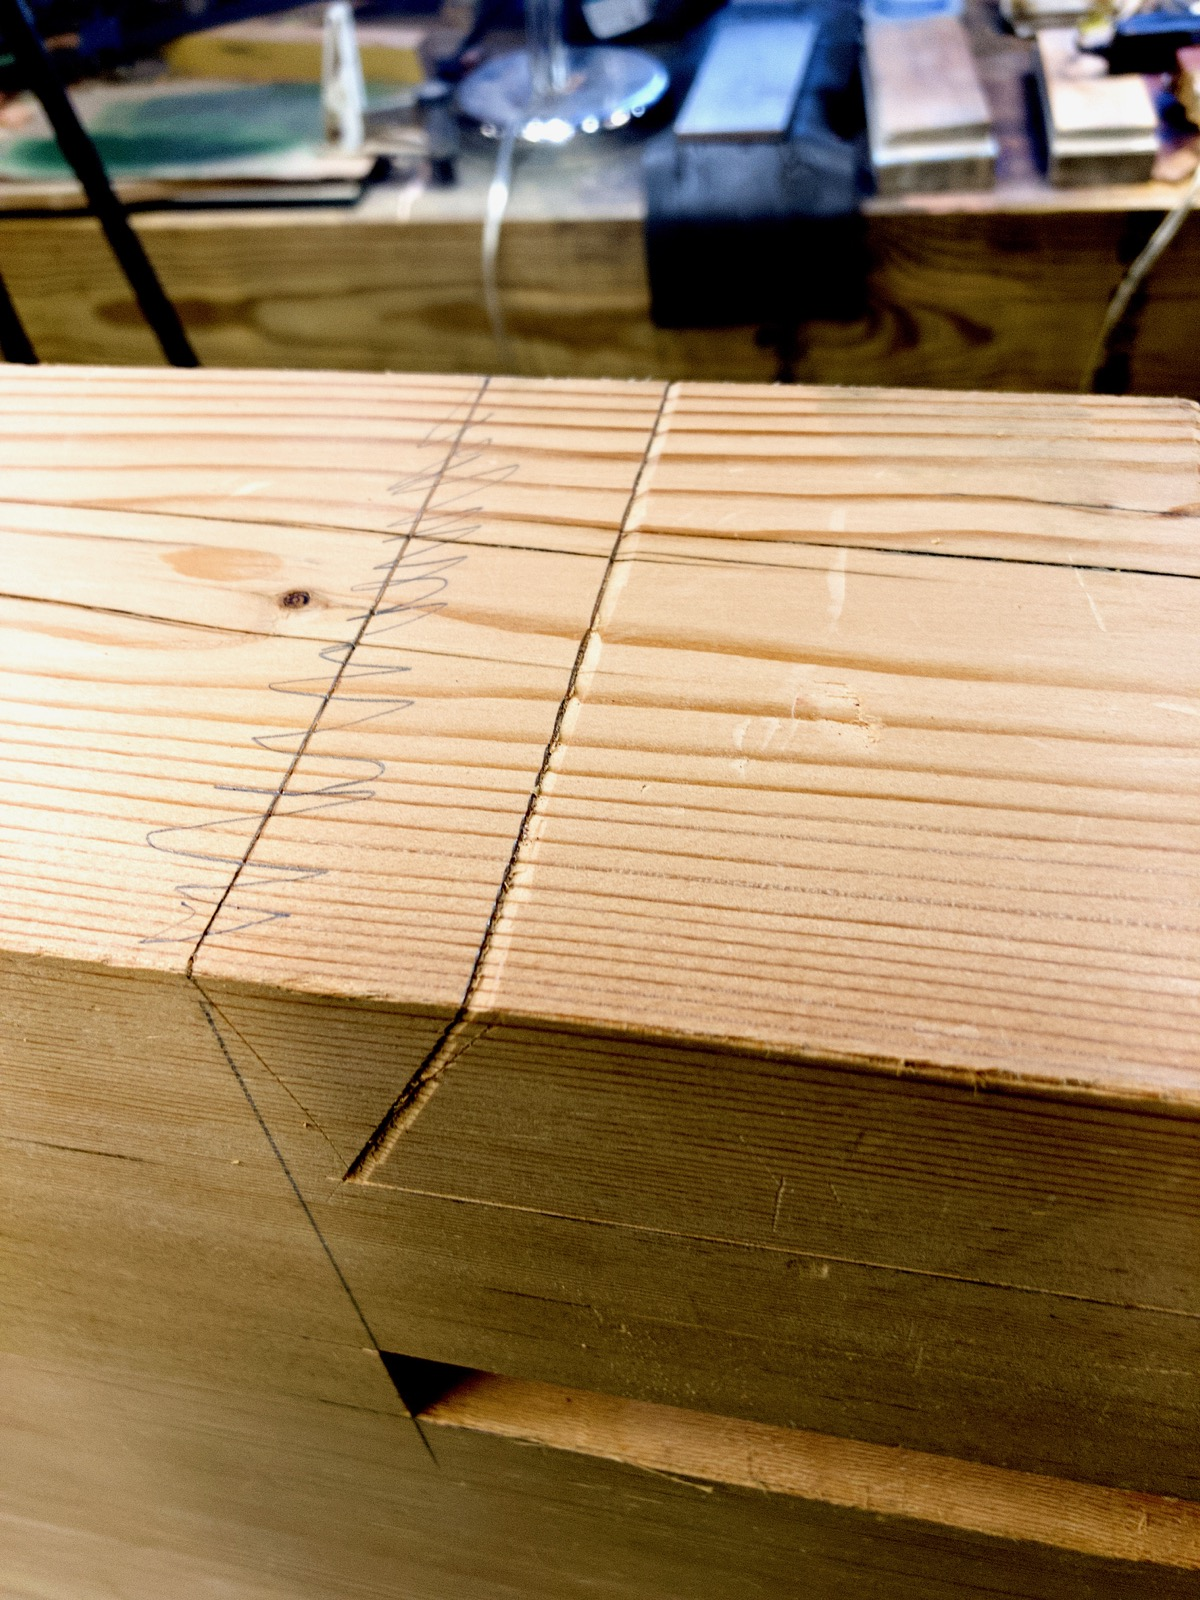 The knife walls cut into a leg for the sliding dovetails.